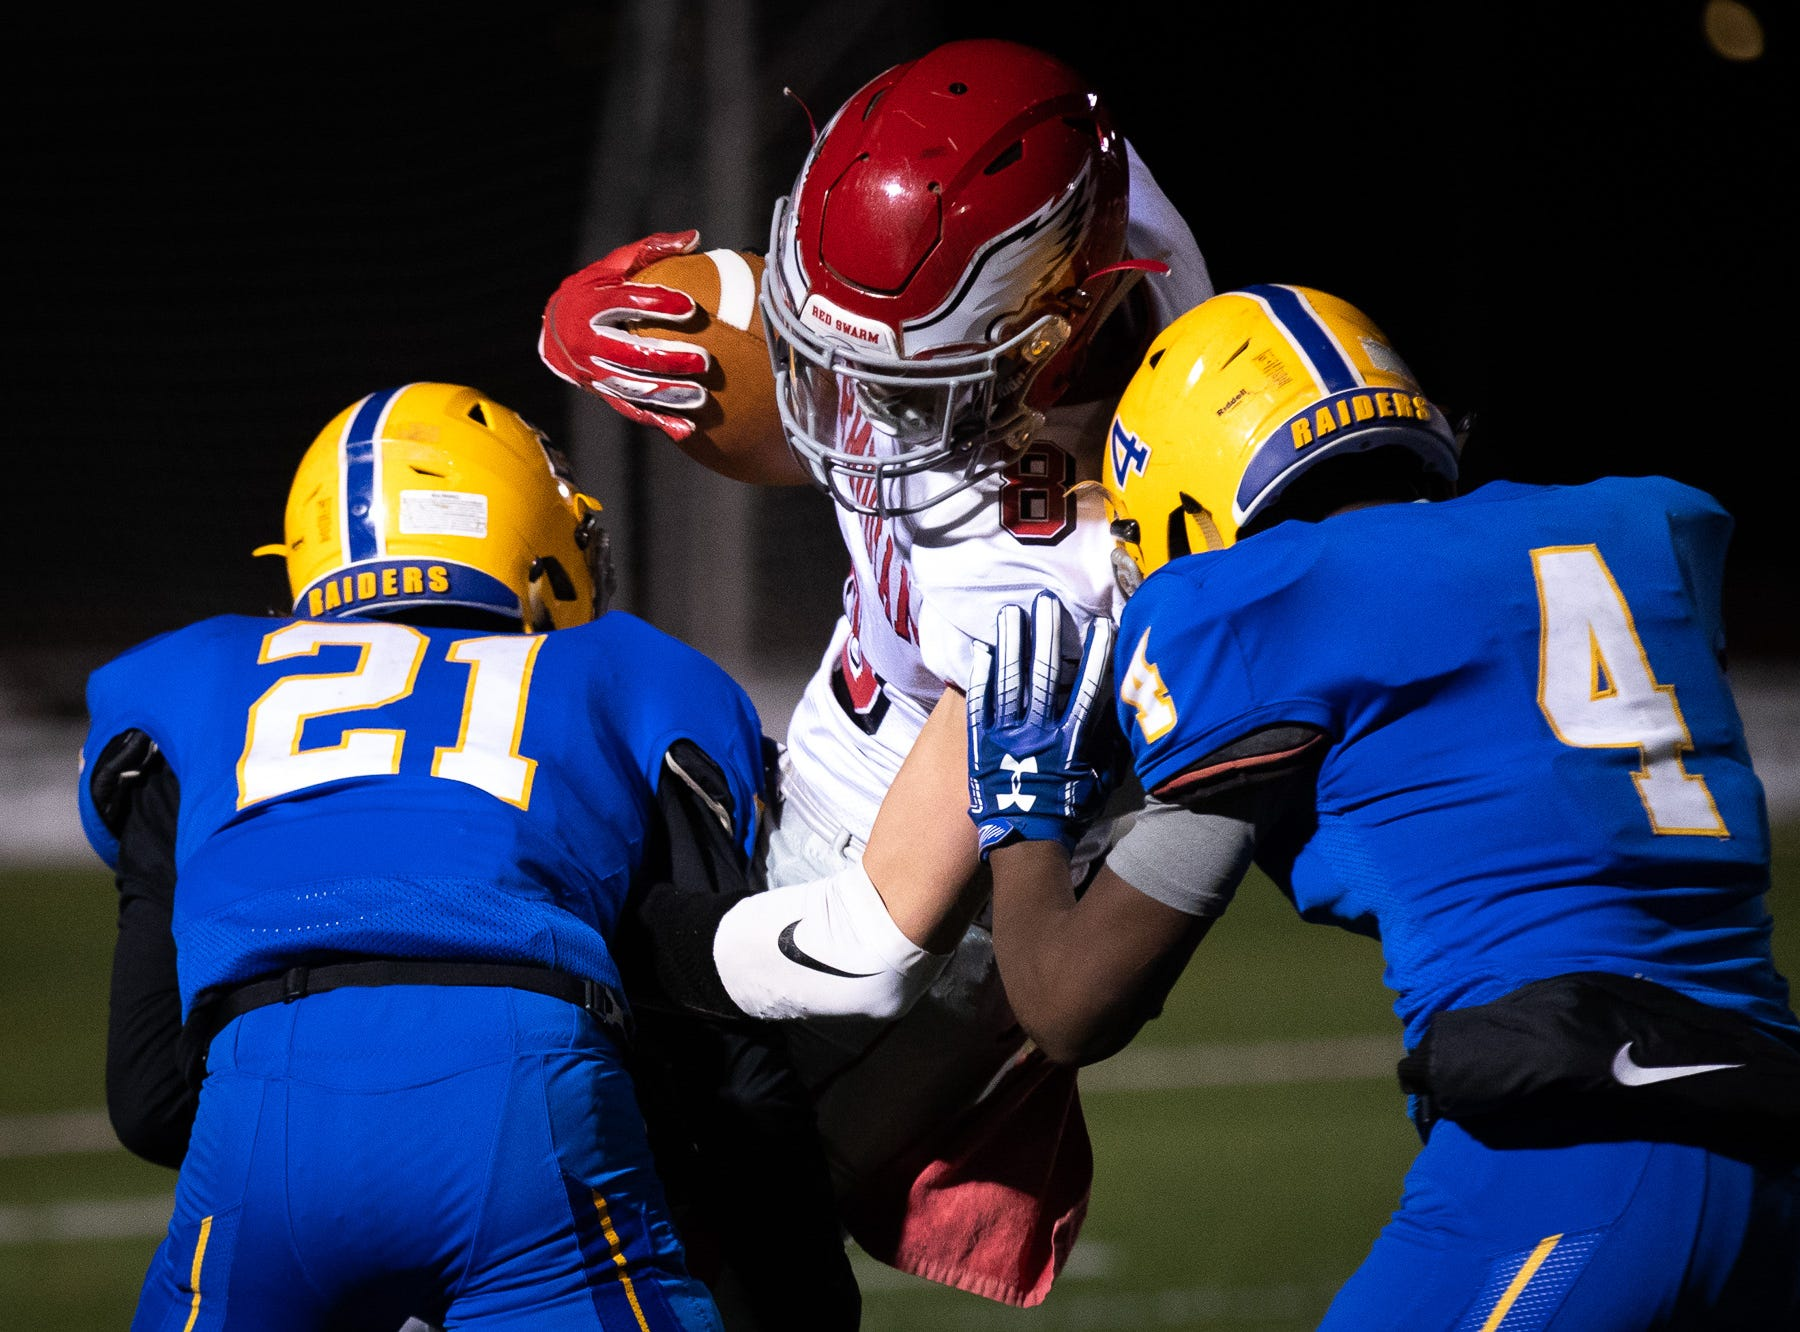 Bermudian Springs' Chase McMillan (8) is brought down by the Middletown defense during the second half of the District 3 Class 3A championship game between Bermudian Springs and Middletown, Saturday, Nov. 17, 2018, at Cedar Crest High School. The Middletown Raiders defeated the Bermudian Springs Eagles 41-20 to win the title.